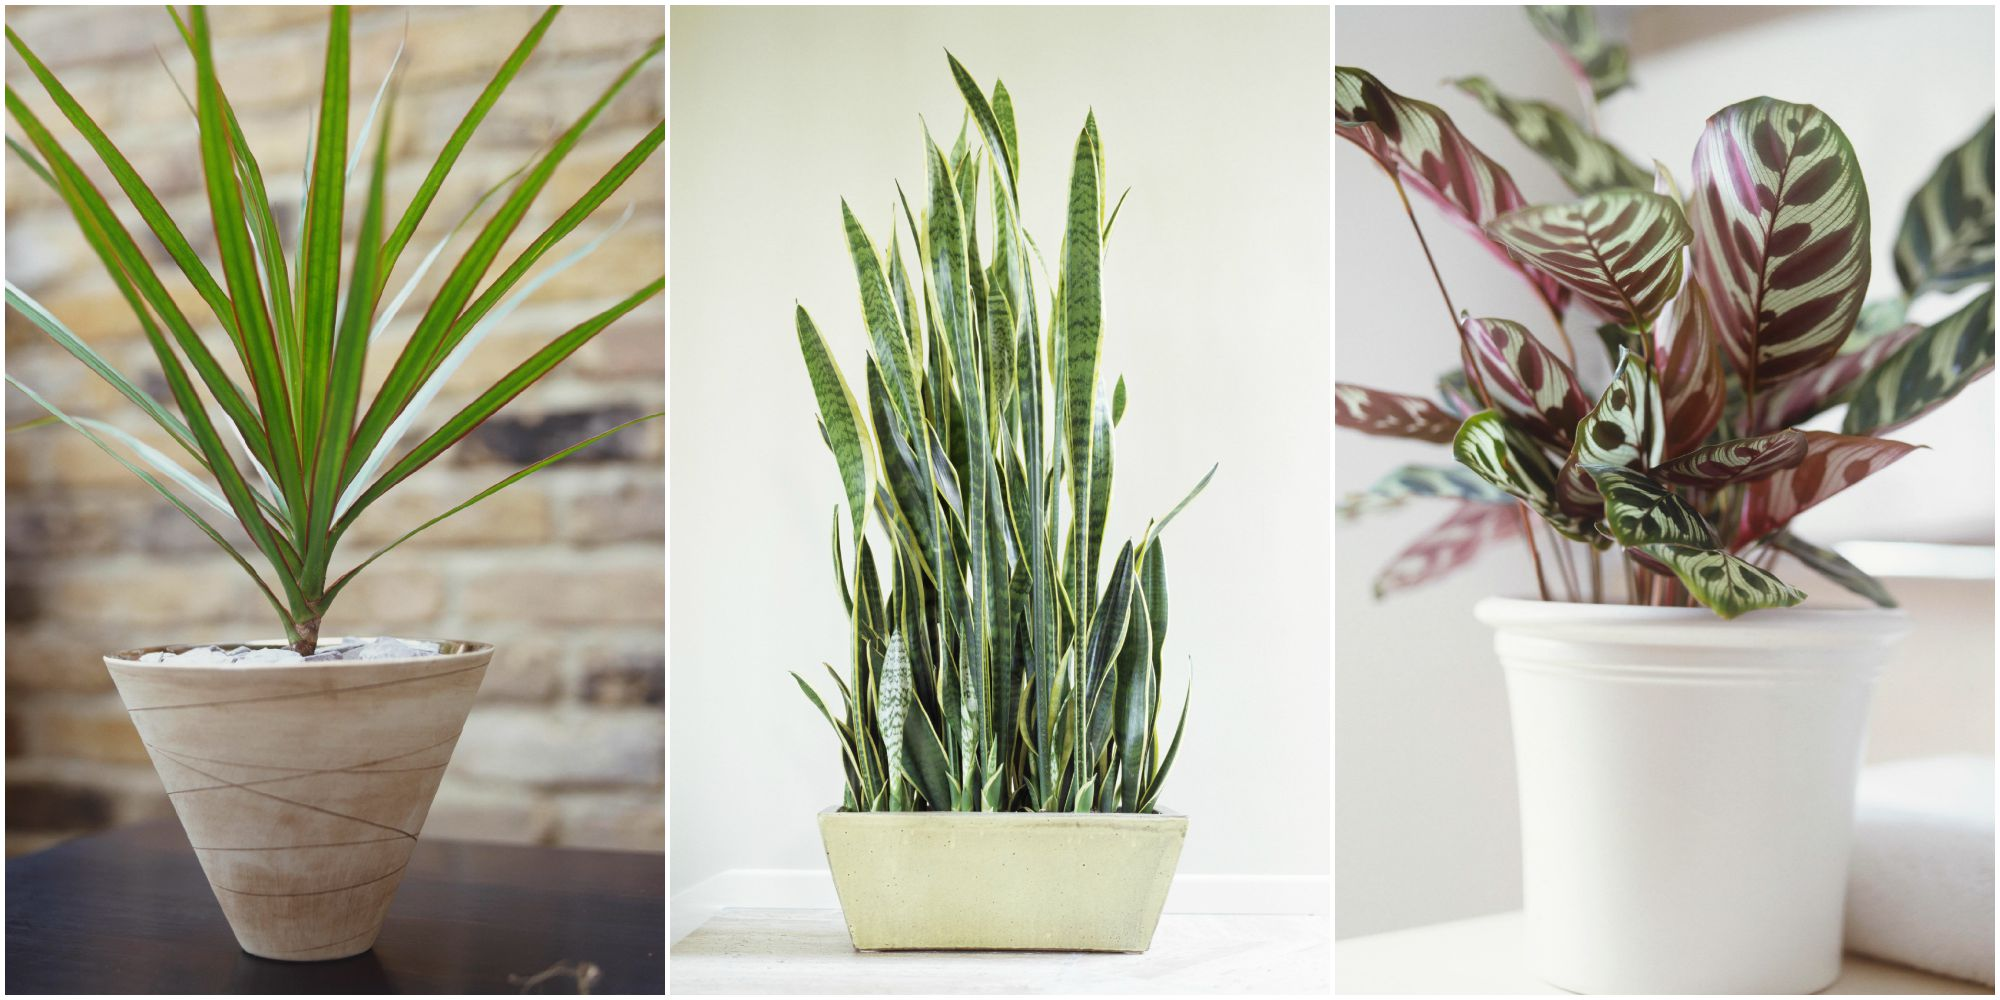 Low light houseplants plants that don 39 t require much light - Best plants for indoors low light ...